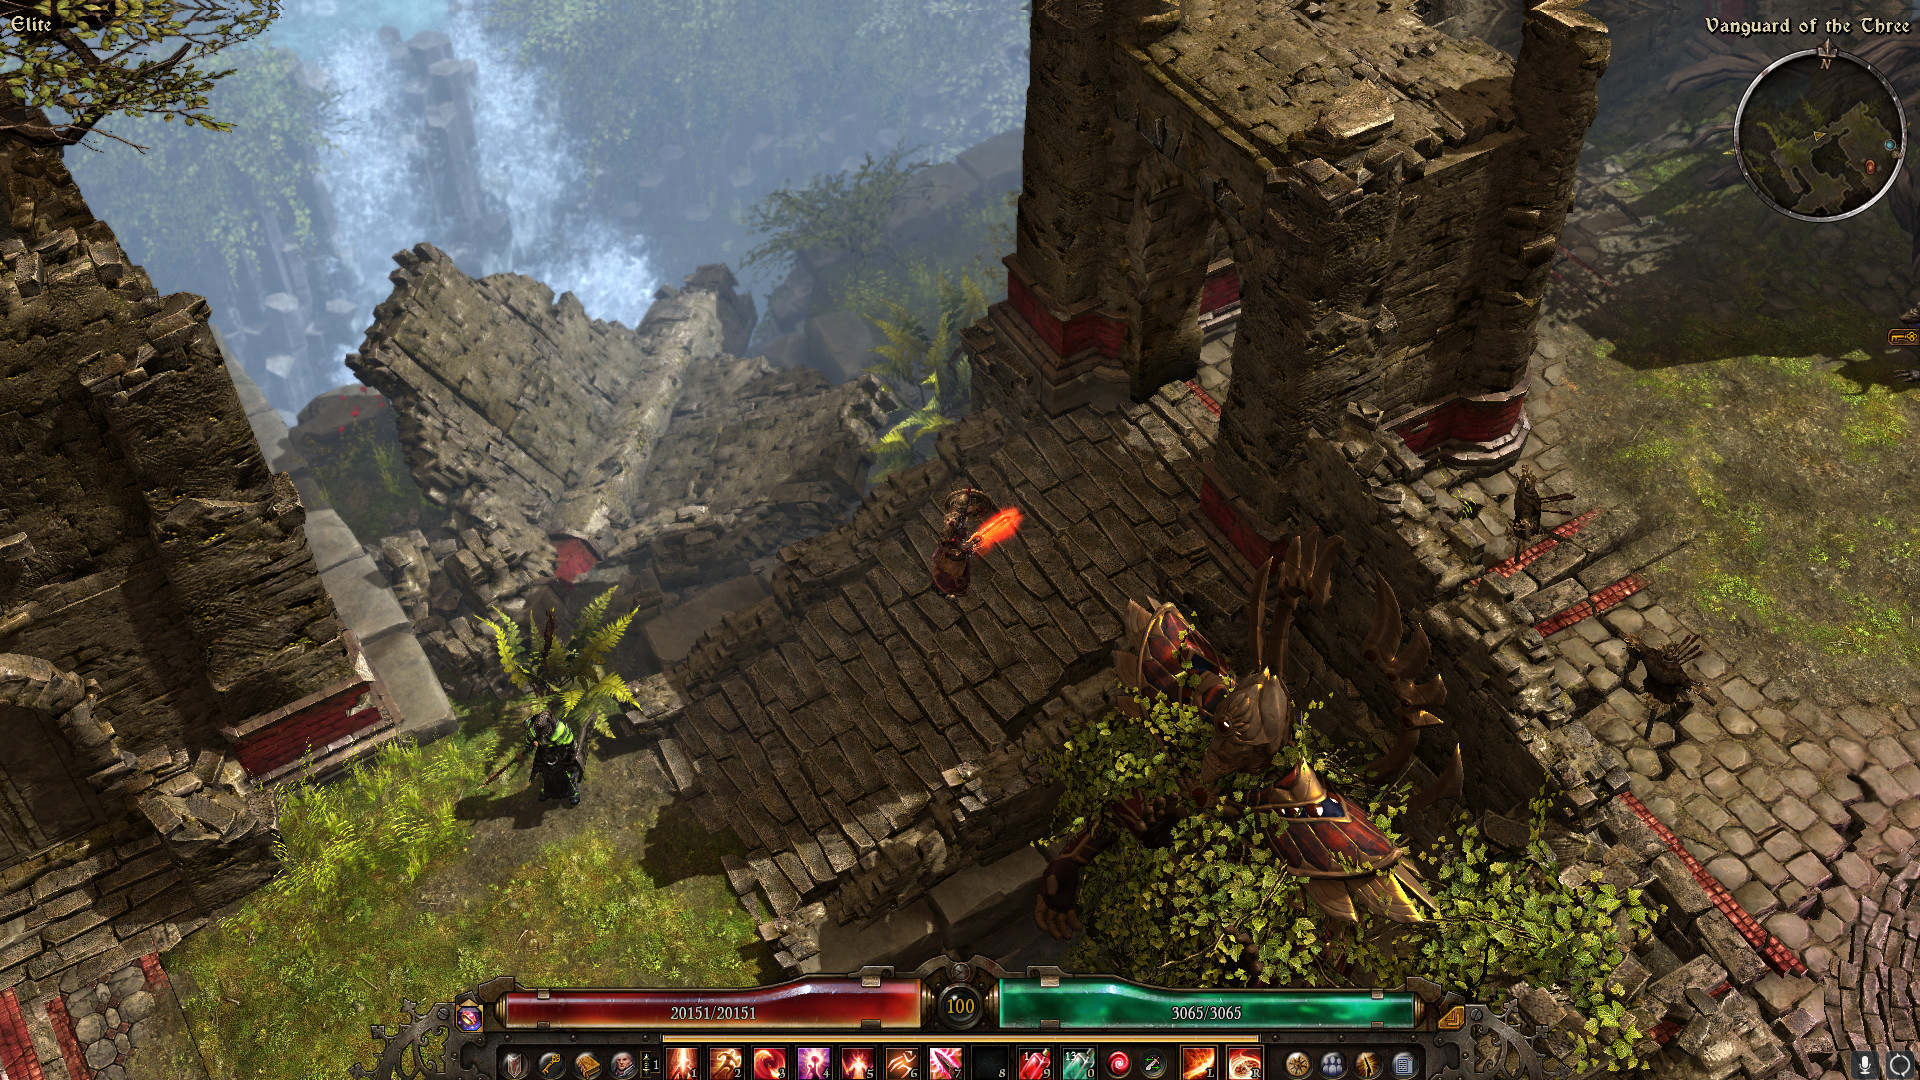 Crate Entertainment's Grim Dawn